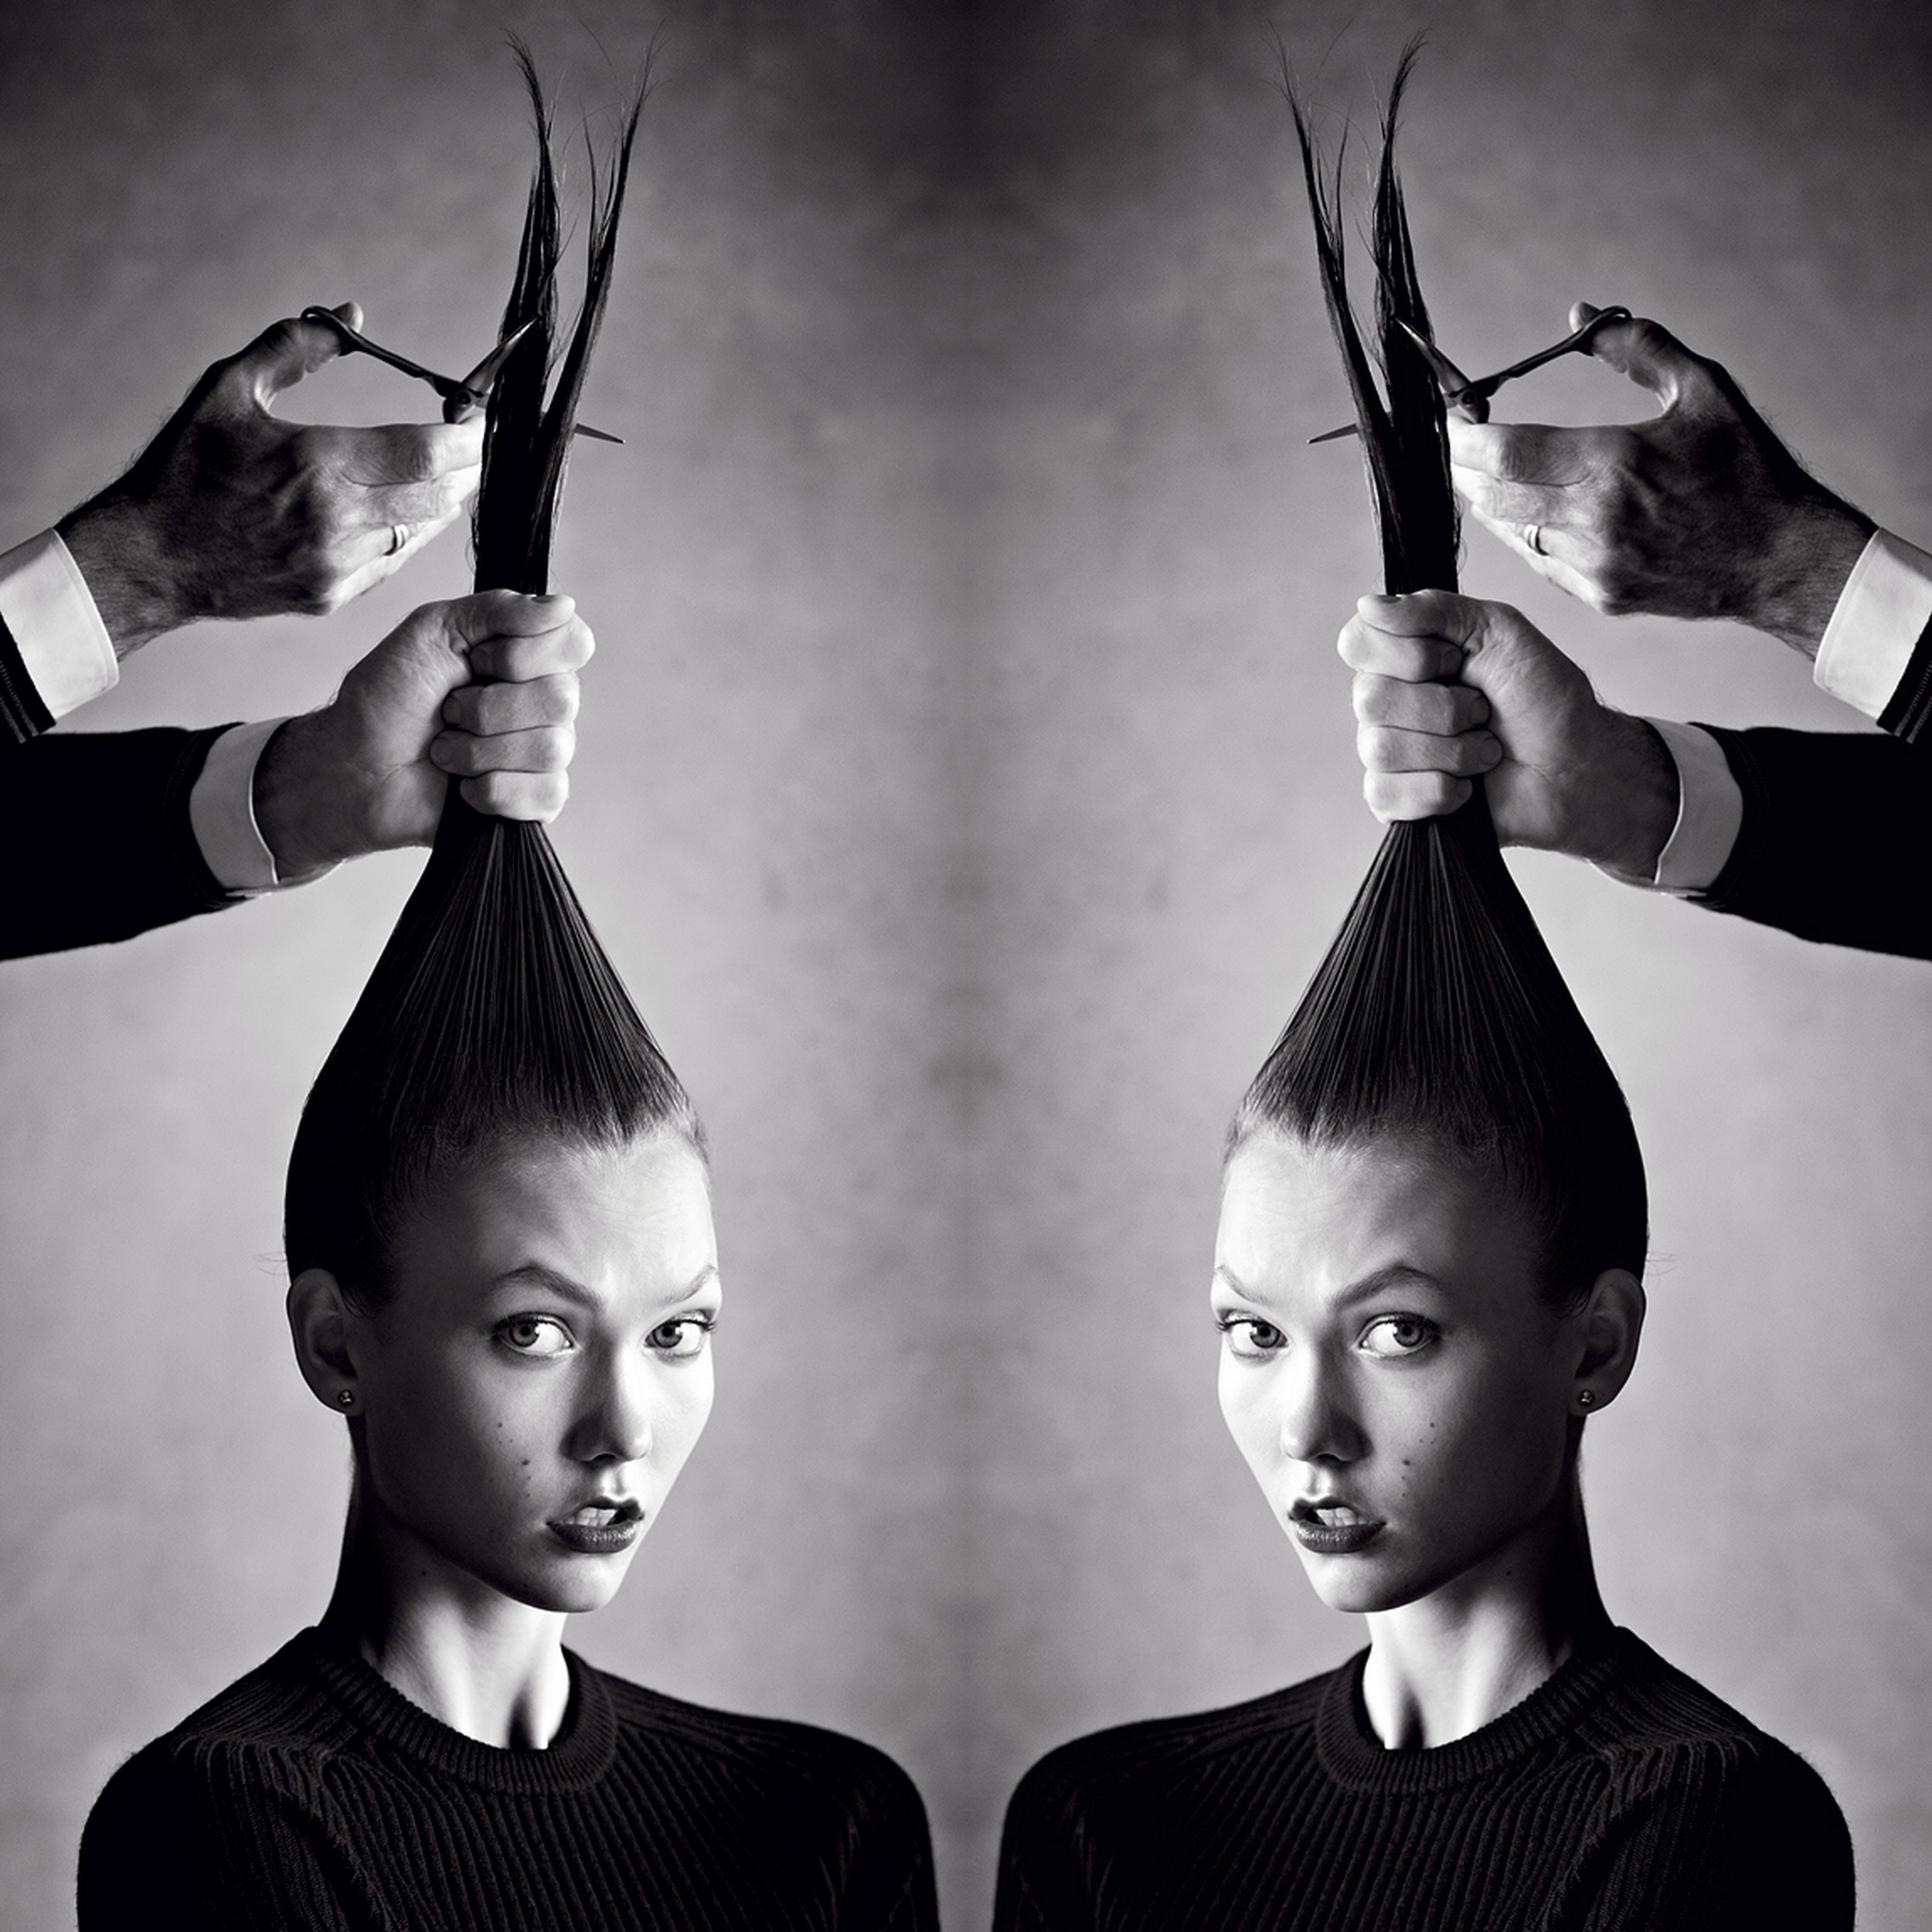 Original image of Karlie Kloss by Patrick Demarchelier for American Vogue ( Source )